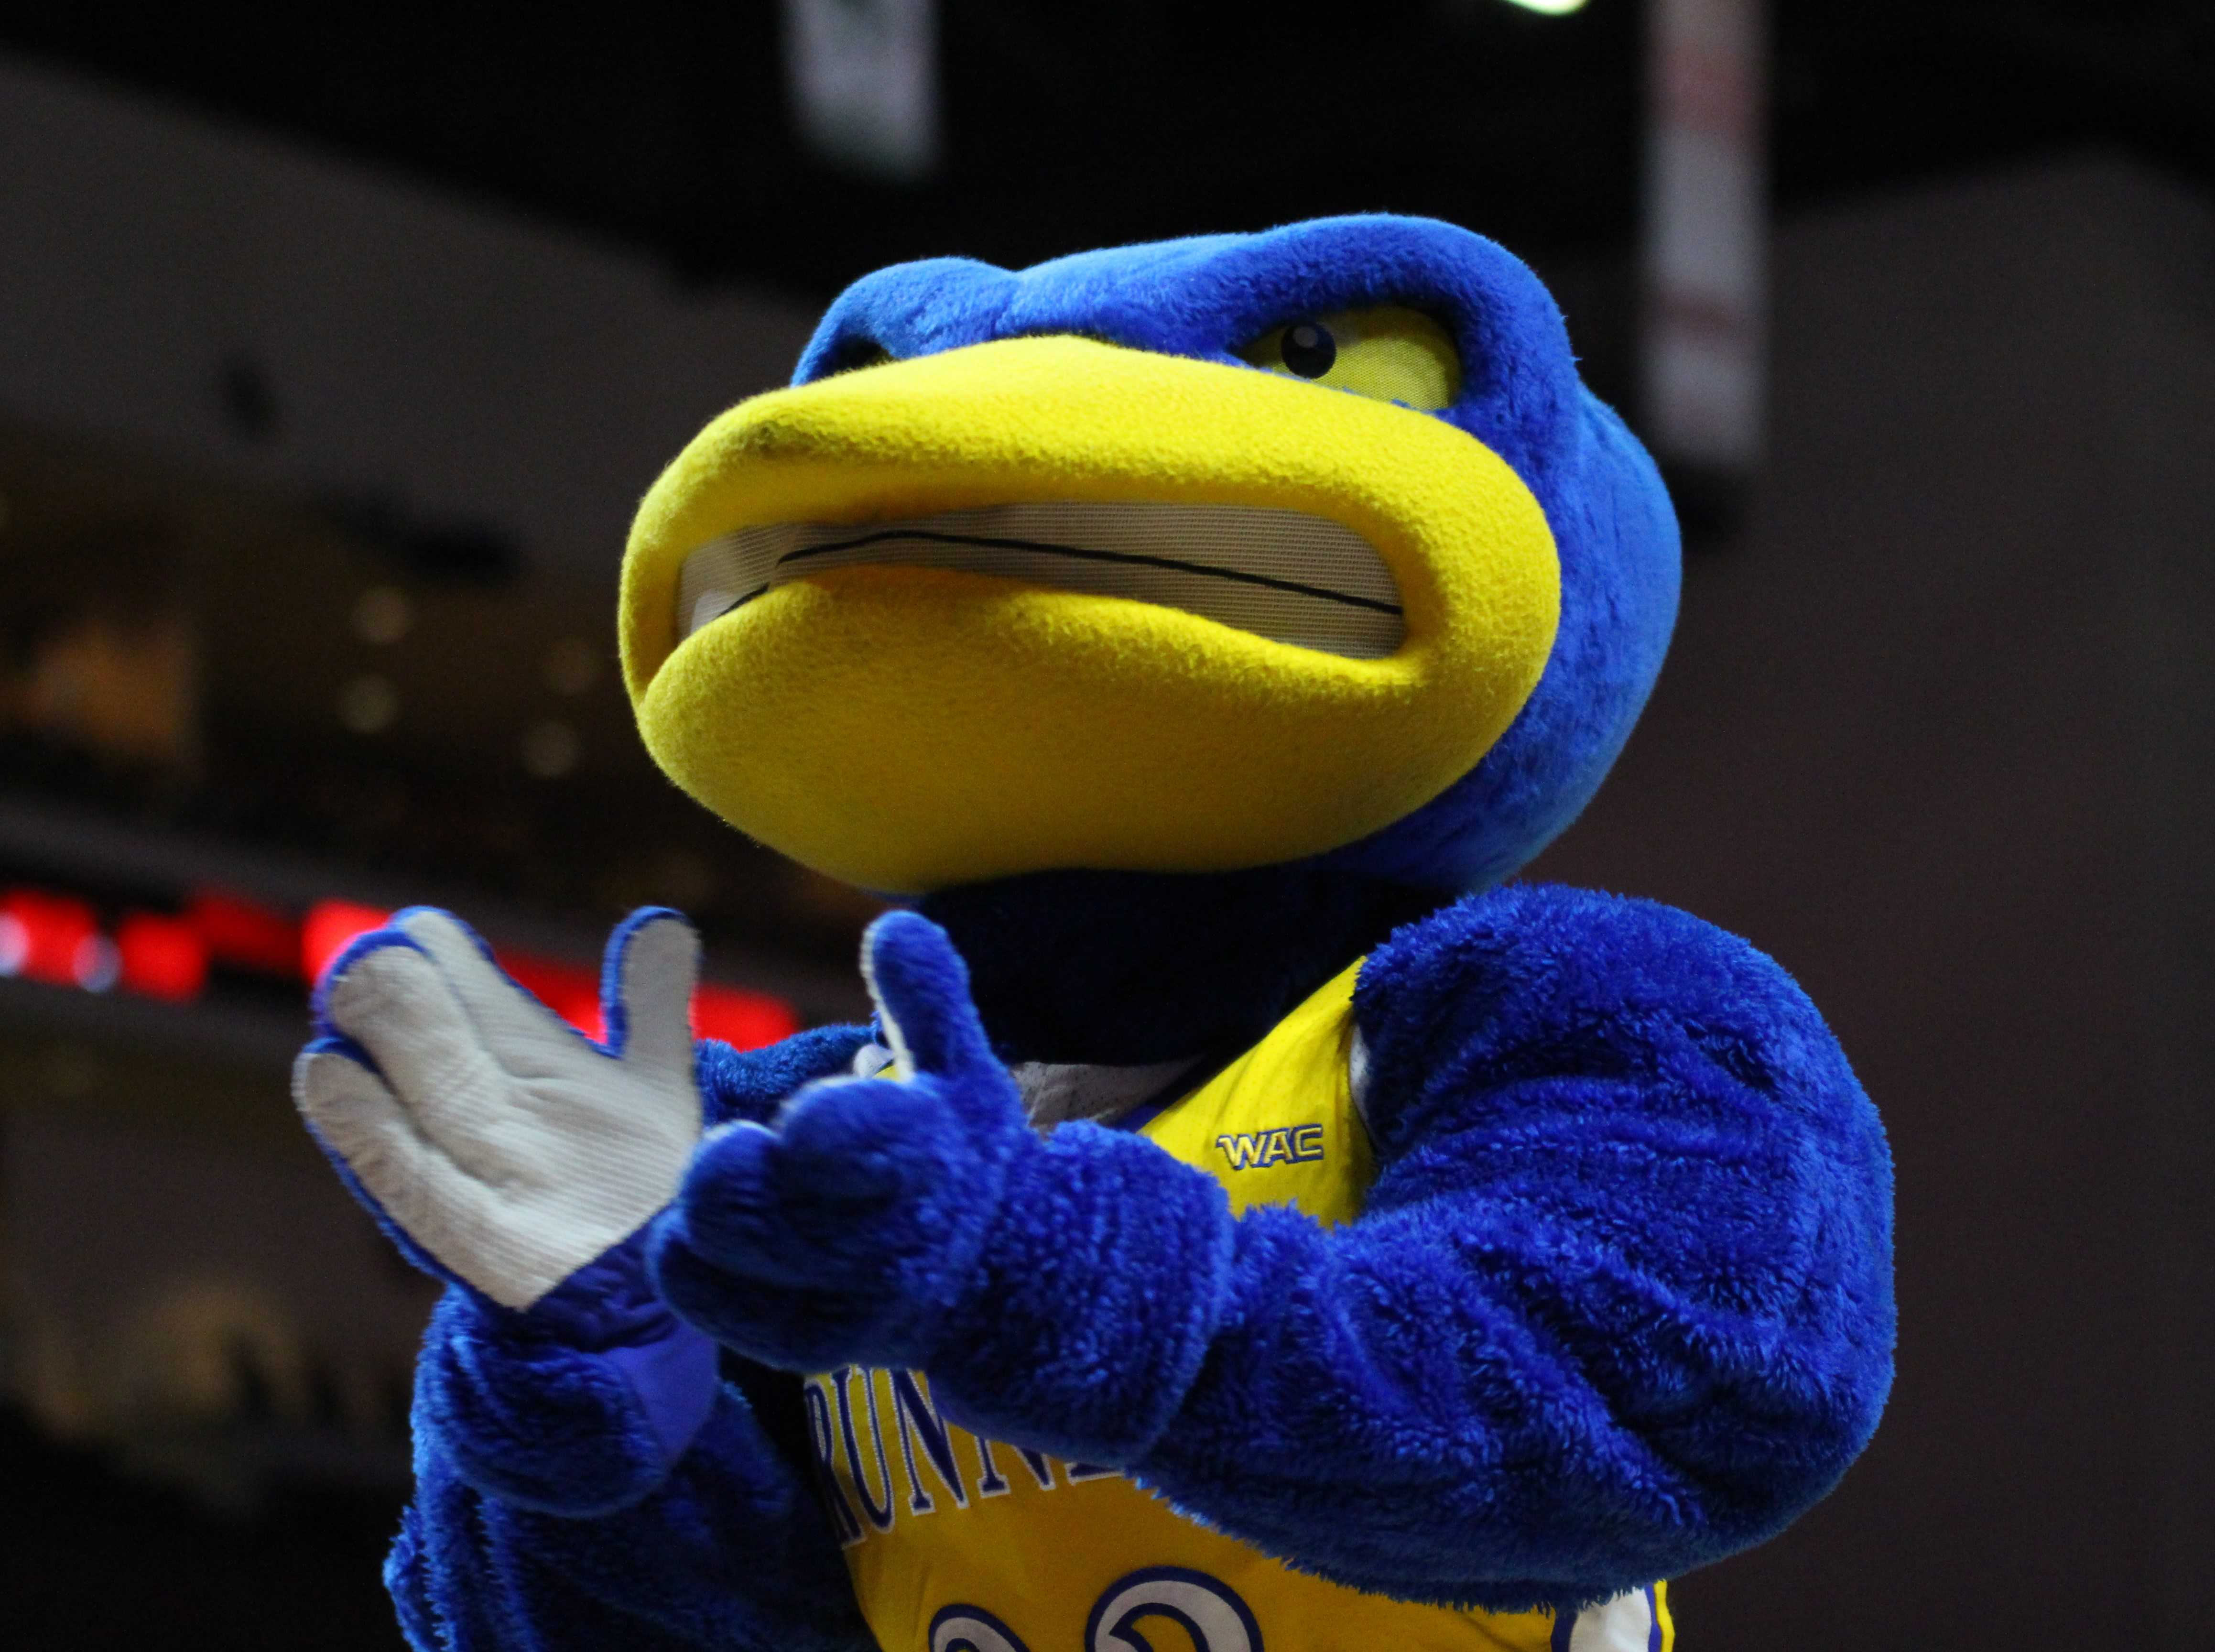 Rowdy the Roadrunner cheers on the crowd in the Western Athletic Conference Tournament final on Saturday, March 10 at the Orleans Arena in Las Vegas.